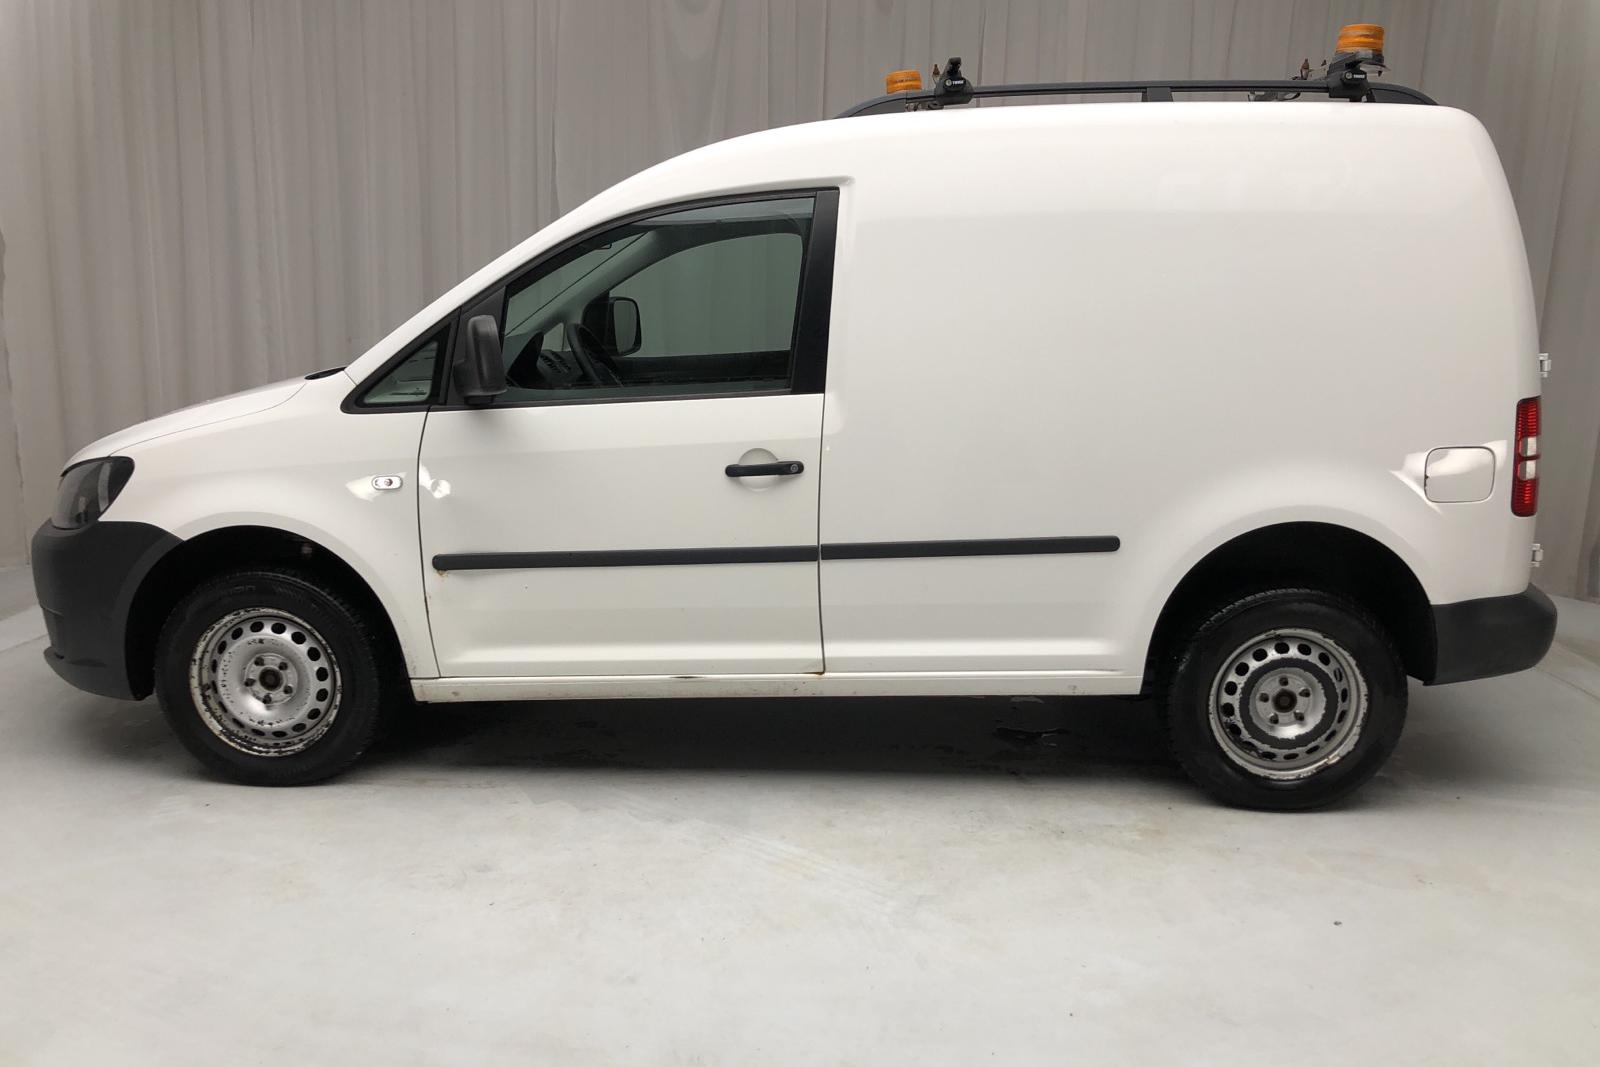 VW Caddy 2.0 TDI Skåp 4-motion (110hk) - 211 070 km - Manual - white - 2014